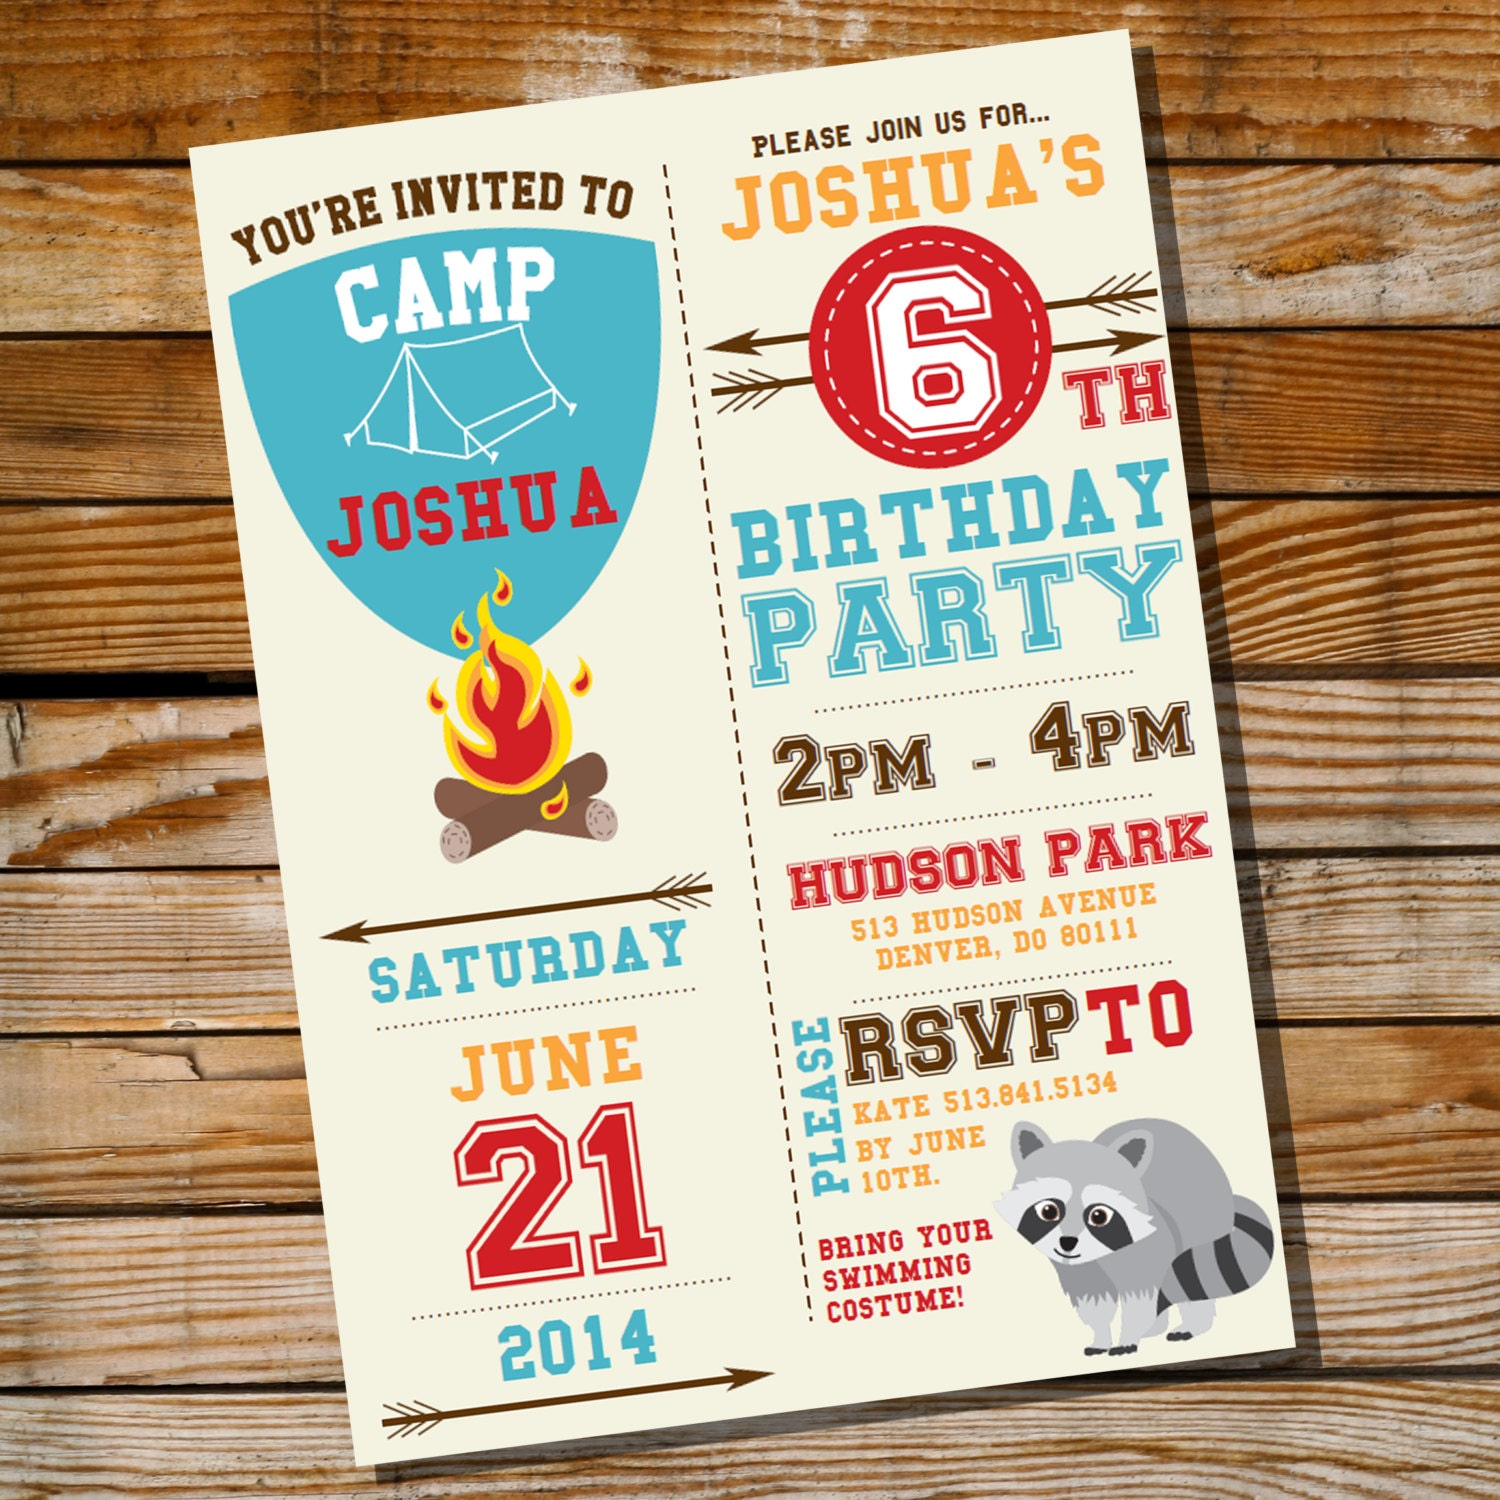 Camping Theme Invitations: Camping Party Invitation For A Boy Birthday Party Instantly